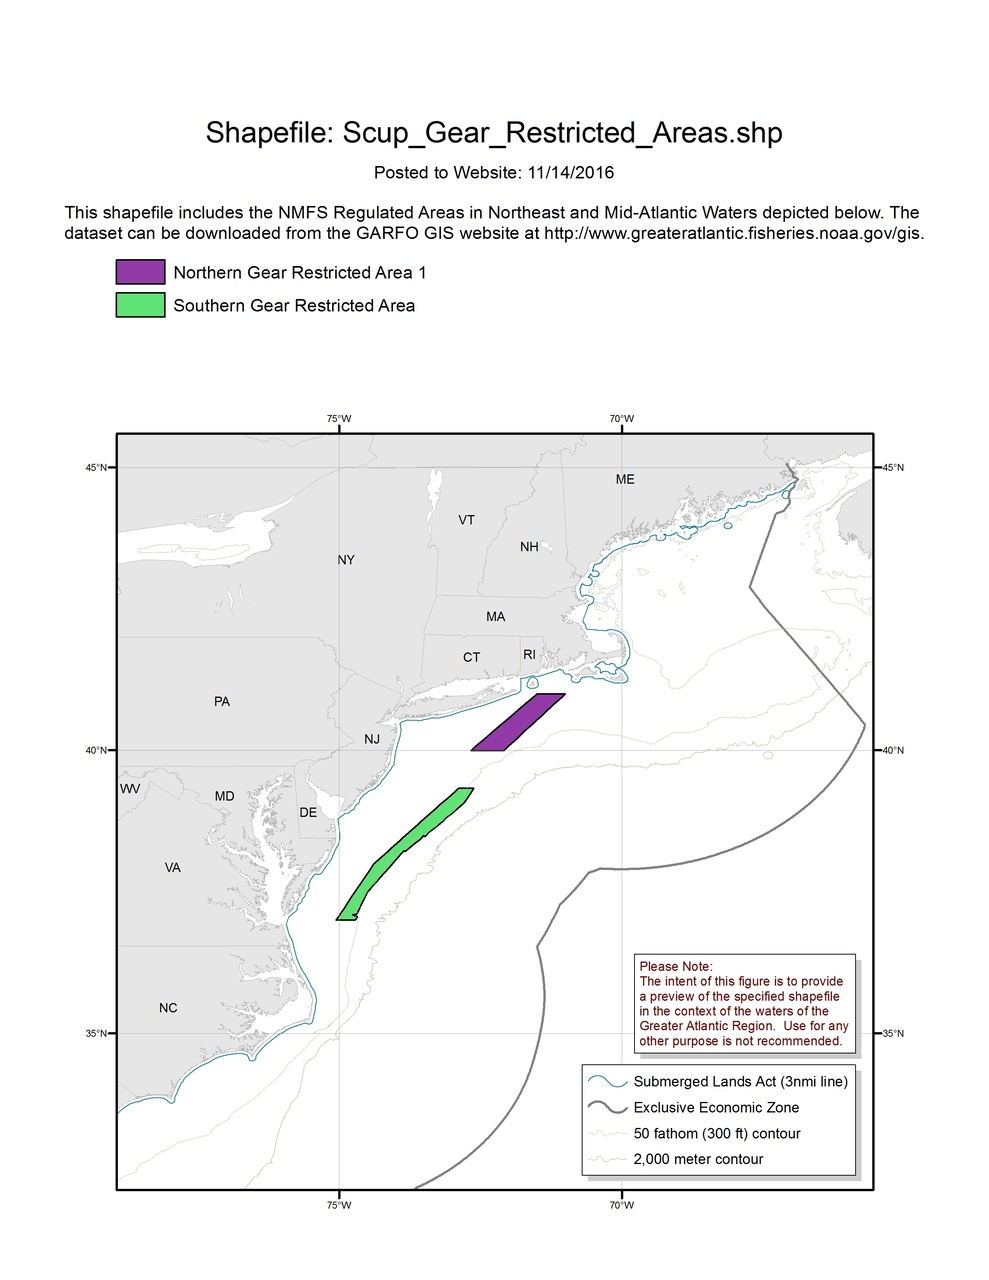 Scup-Gear-Restricted-Areas-MAP-NOAA-GARFO.jpg